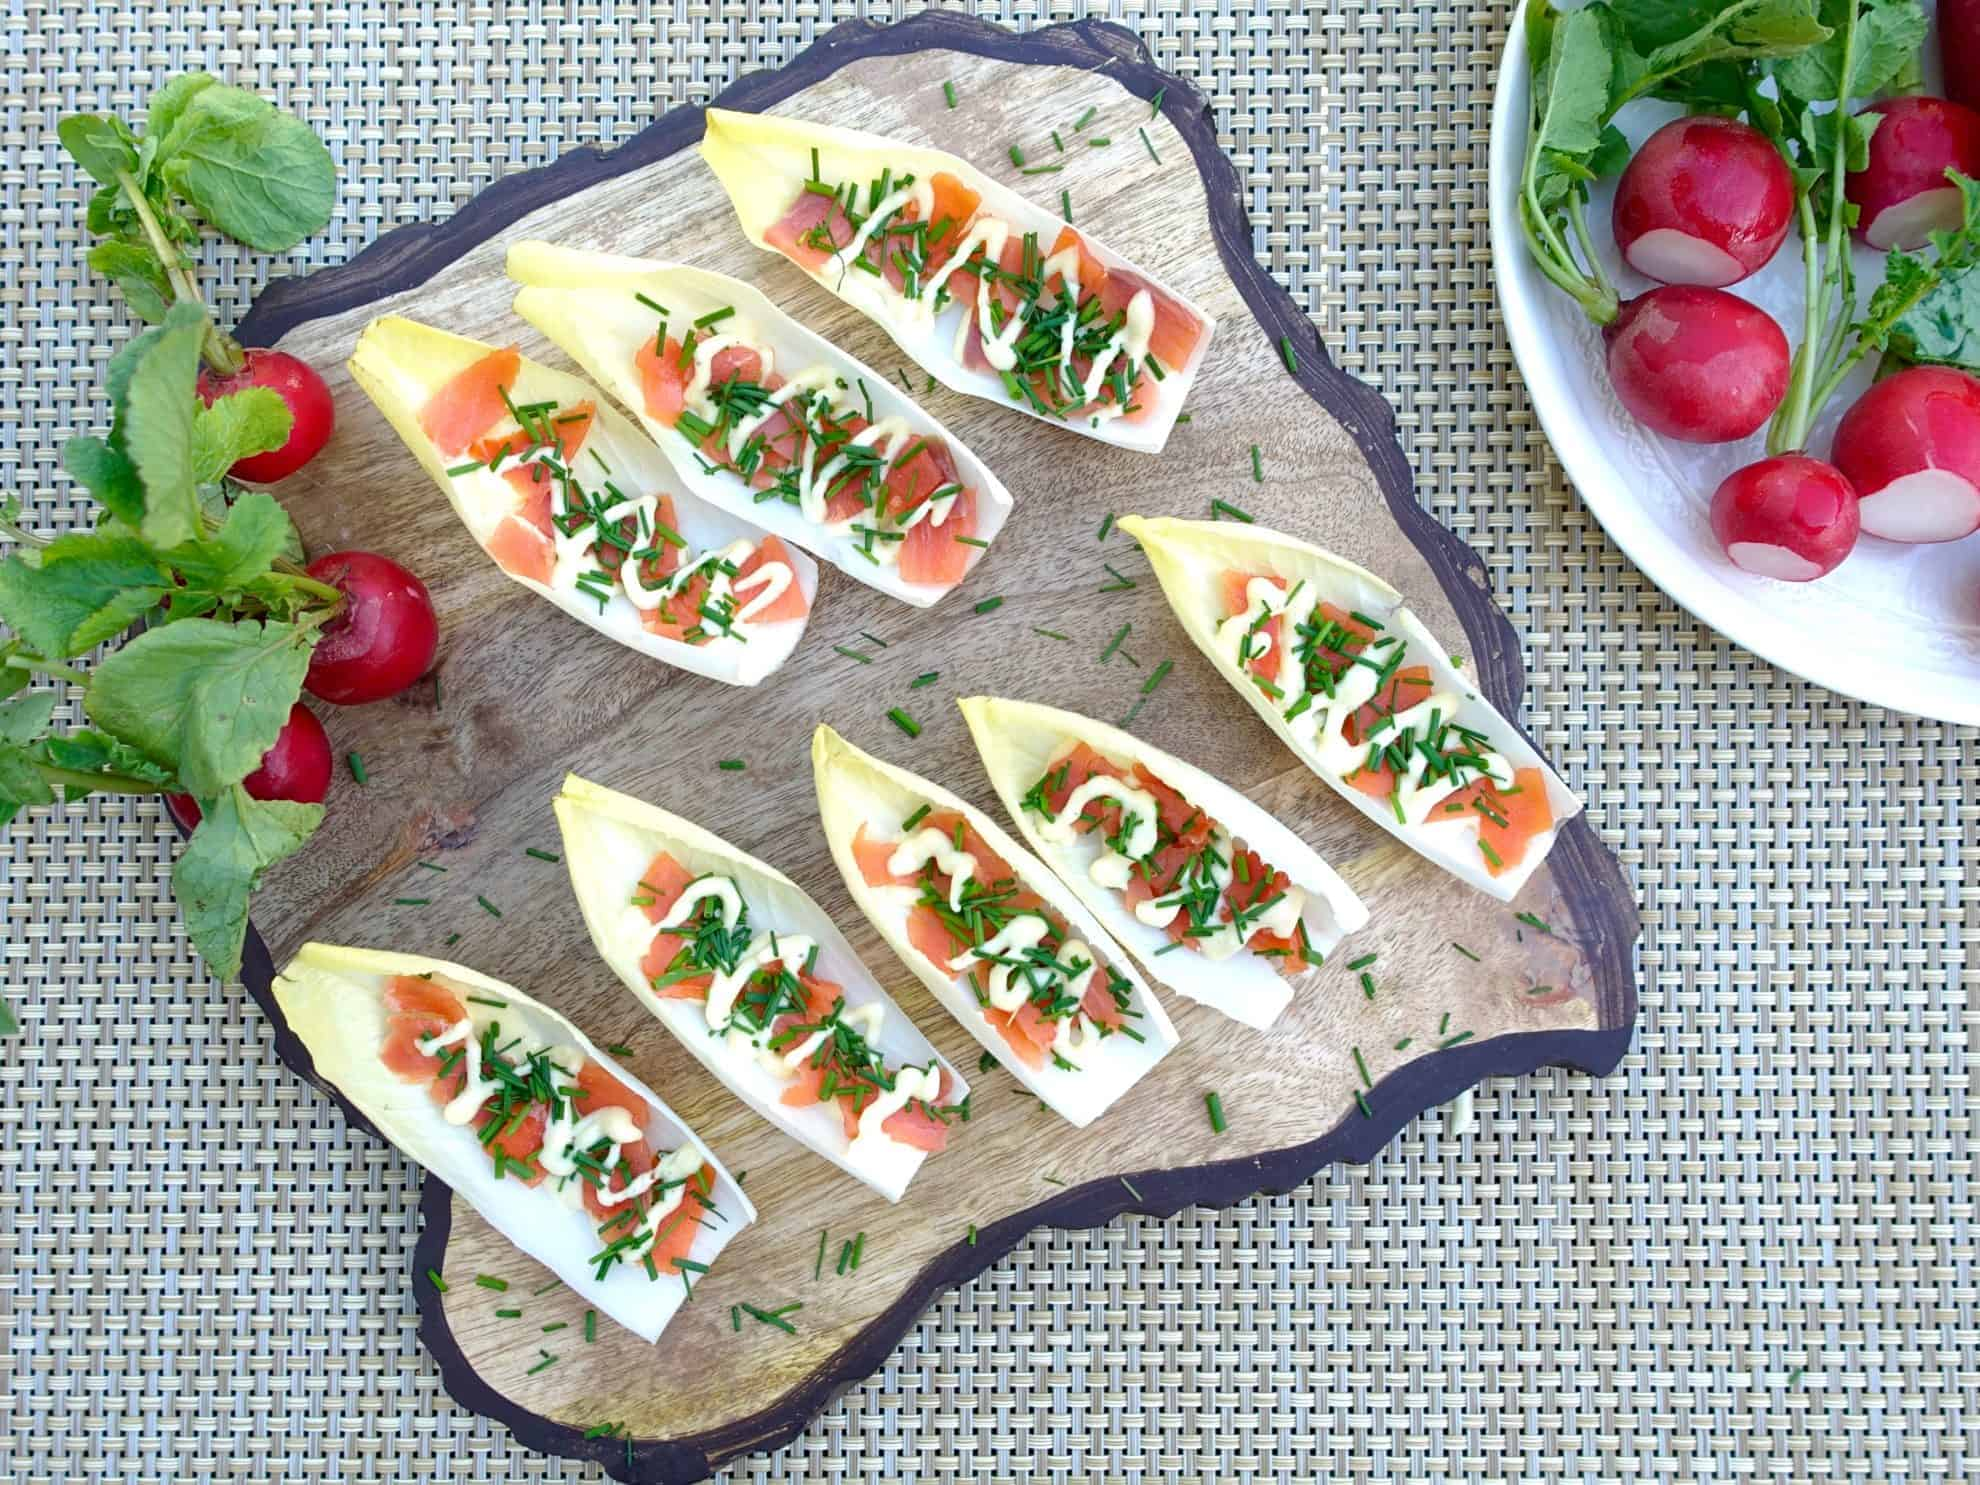 Endive with Smoked Salmon Serving 2